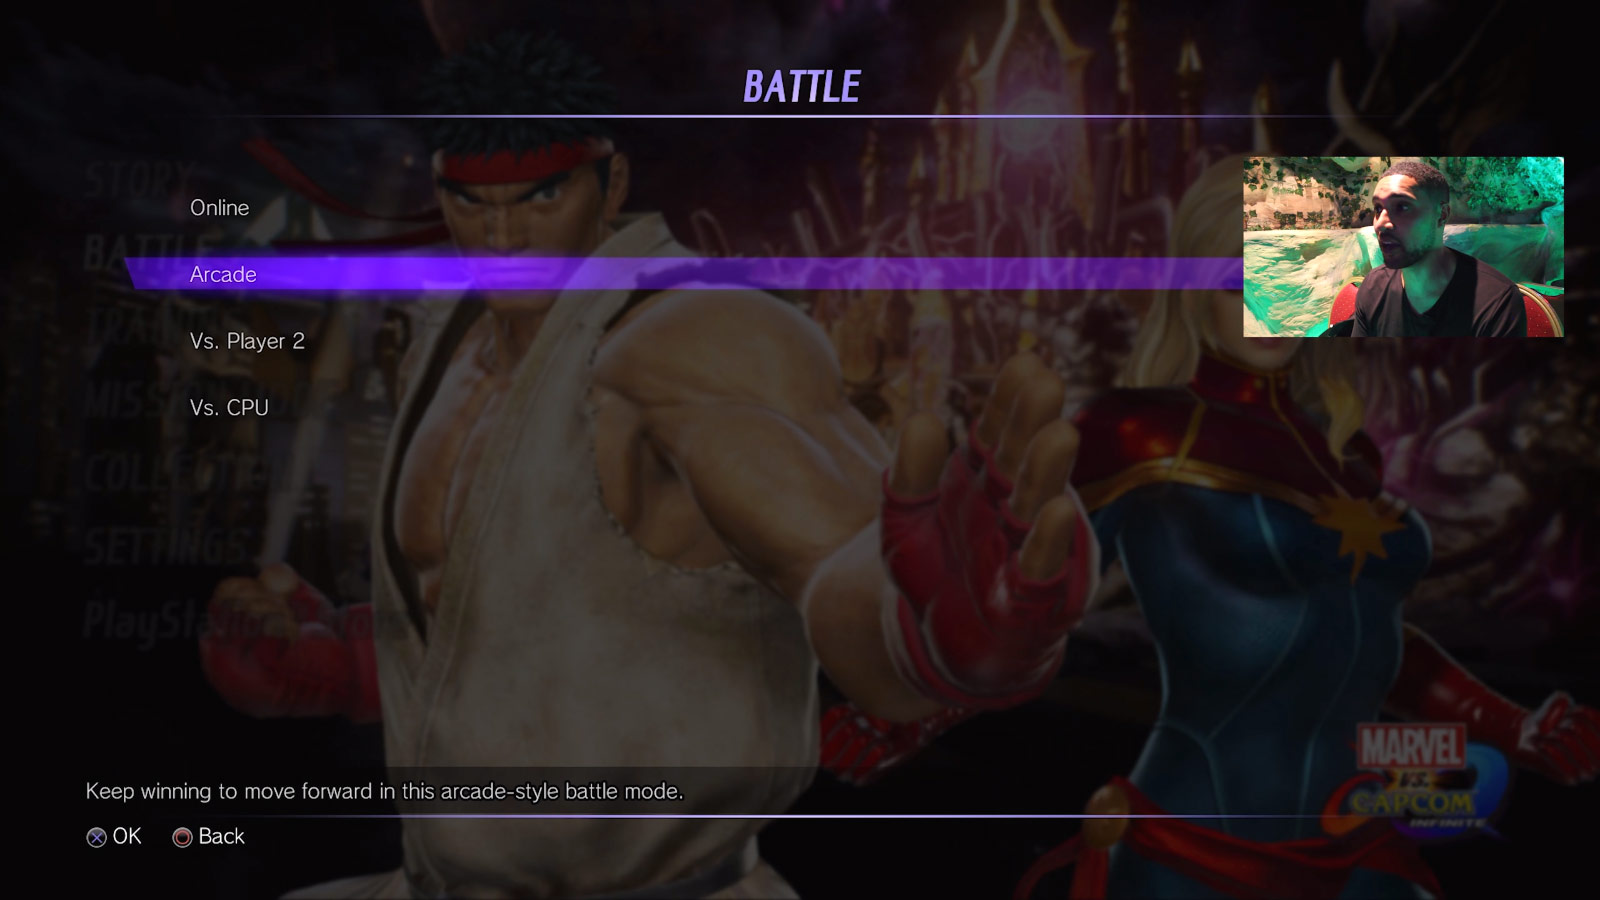 Marvel vs. Capcom: Infinite character select screen and menus 2 out of 6 image gallery